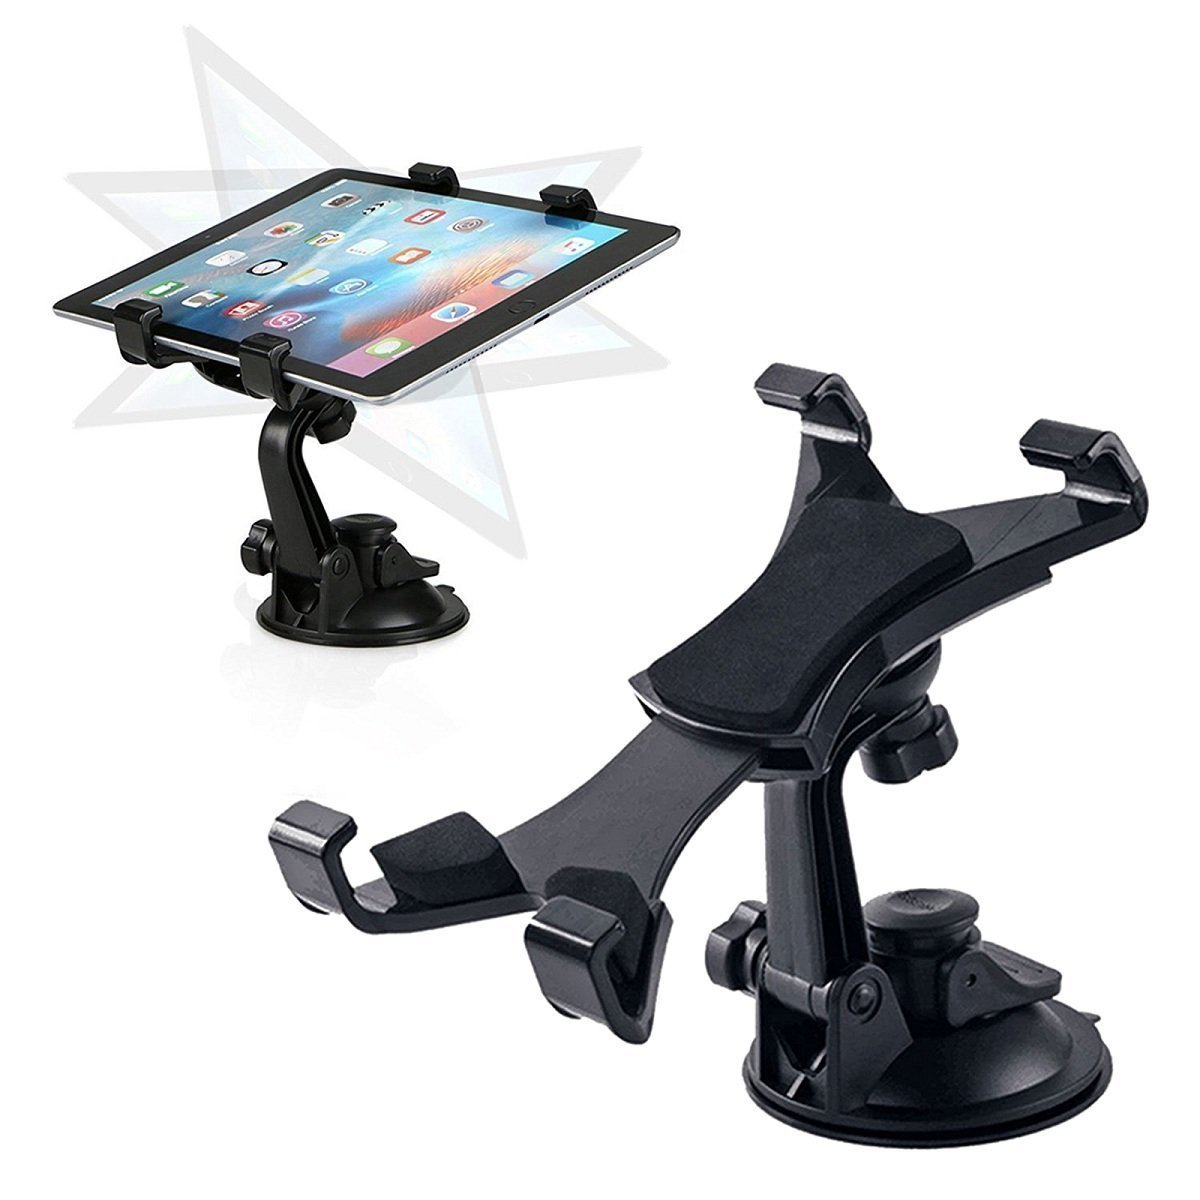 6s//6s Plus Xnyocn New Generation Dual Clips Universal Cell Phone Air Vent Car Mount Holder Cradle 360 Rotation for for iPhone X 6//6 Plus 7//7 Plus Samsung Galaxy and Android phones 4351621941 iPhone 8//8 Plus